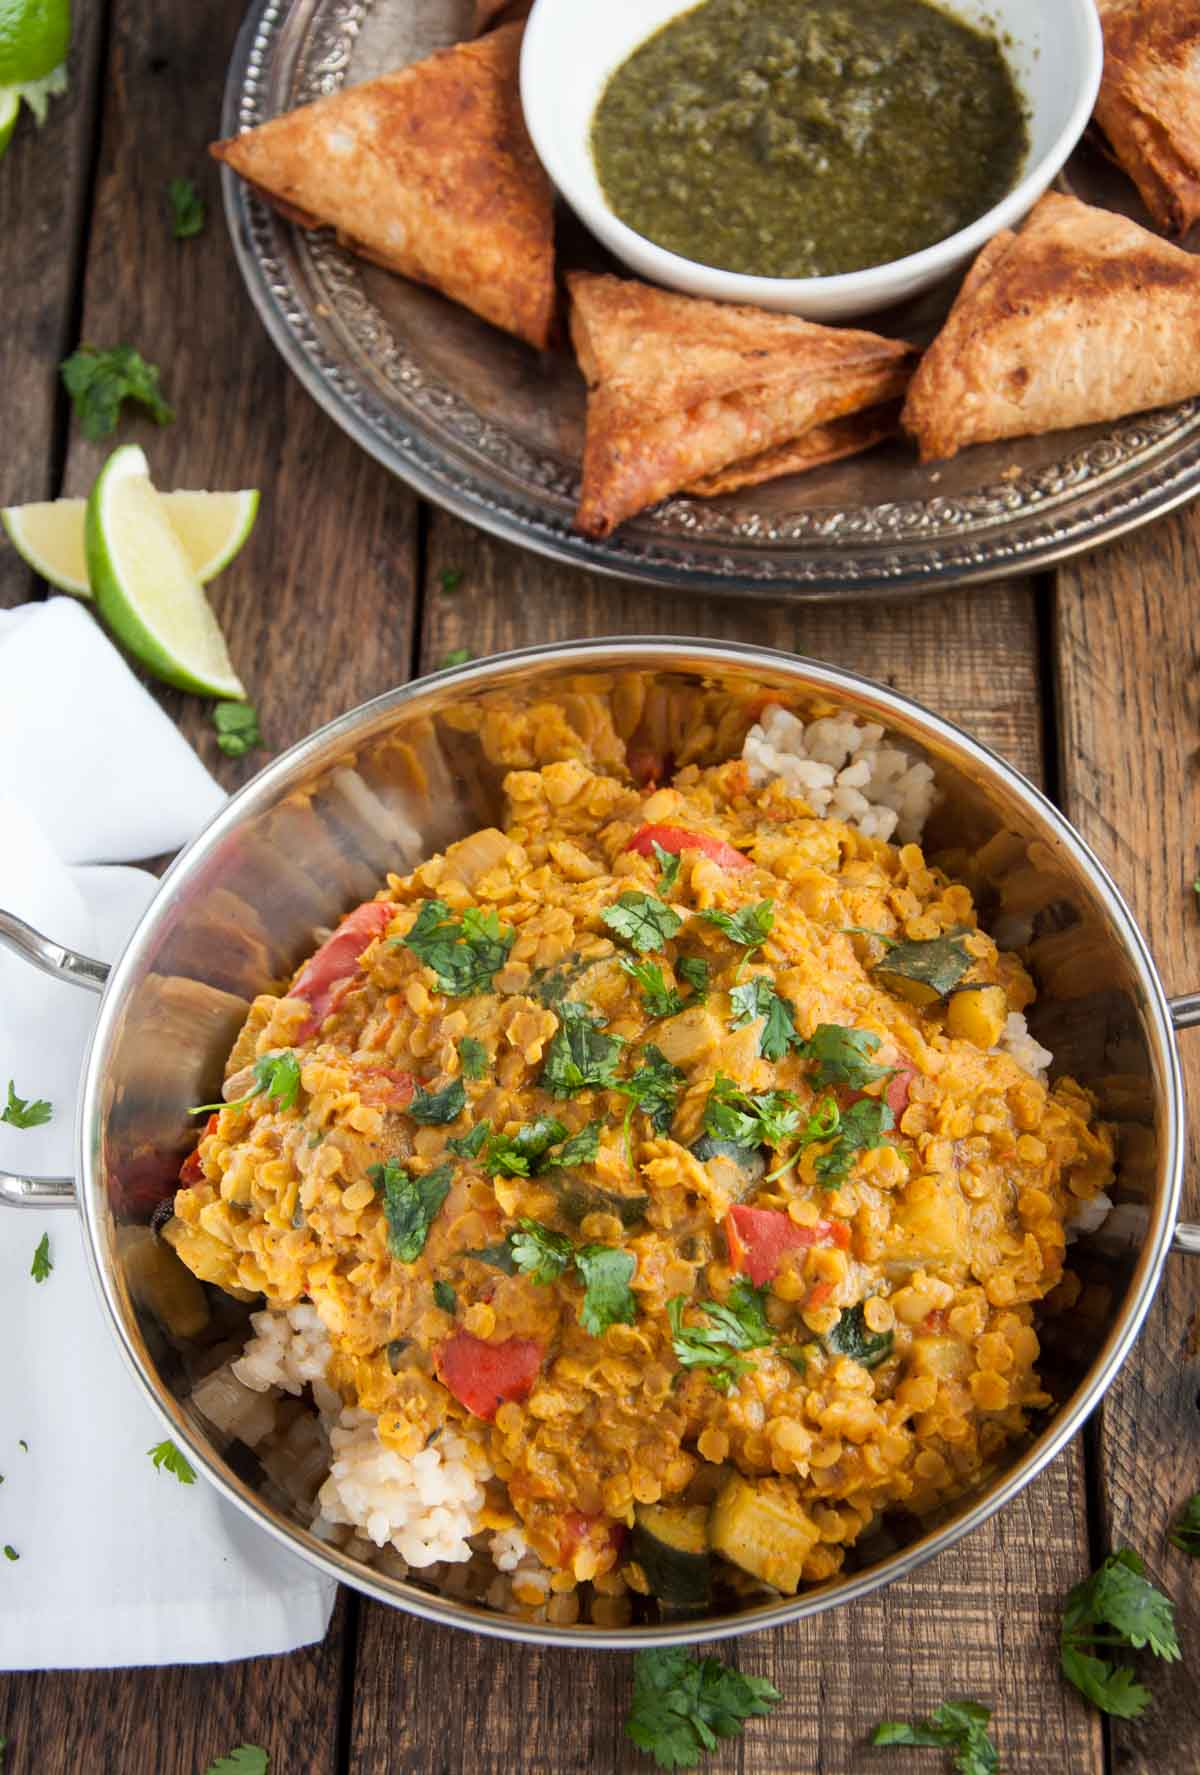 Indian Red Lentil Dal Feasting Not Fasting